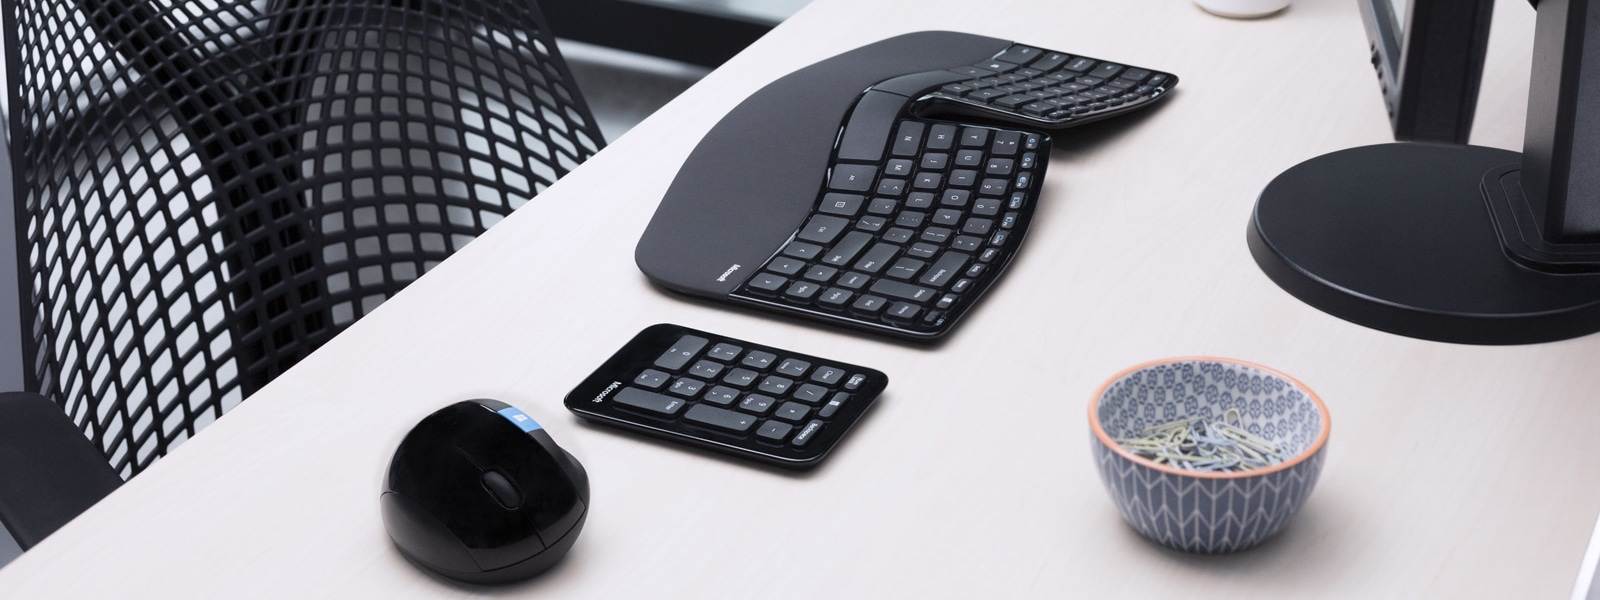 A keyboard and computer mouse sit on a desk.